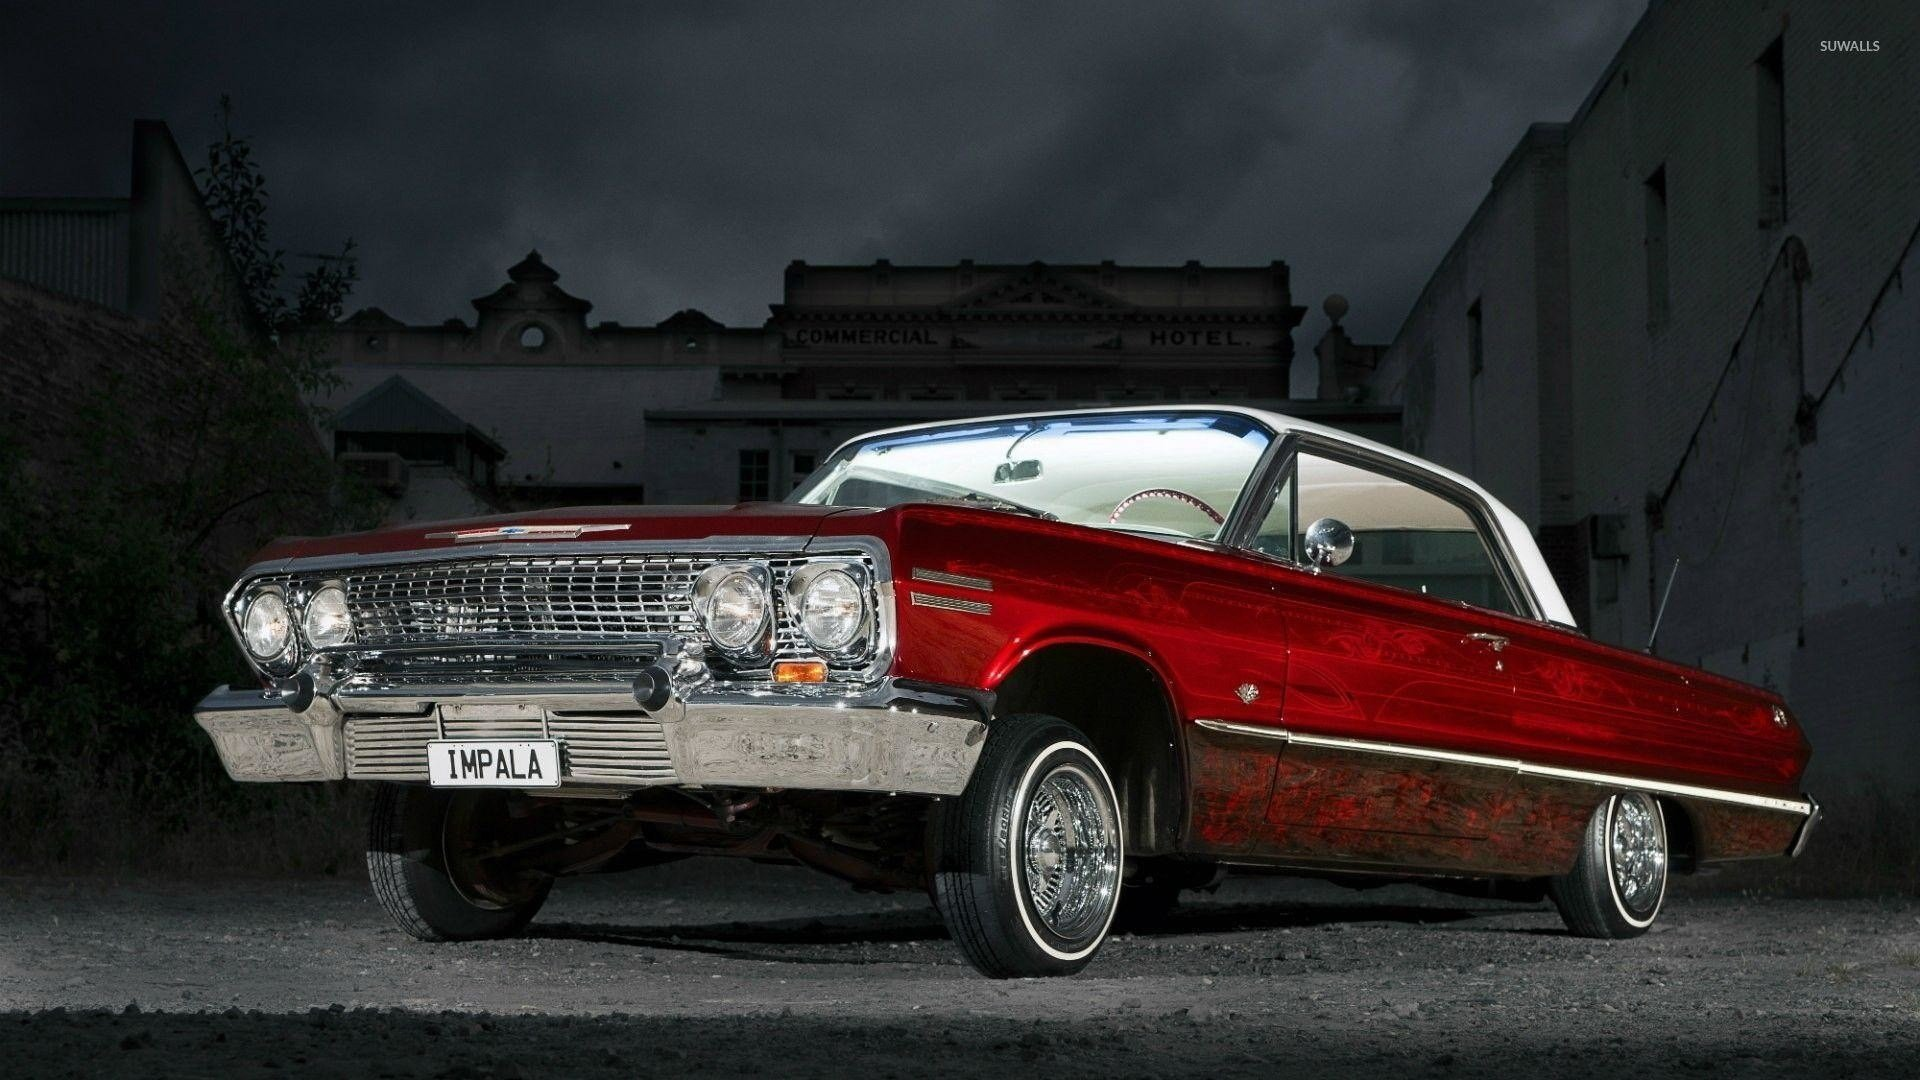 New Chevrolet Impala Wallpapers 61 Images On This Month